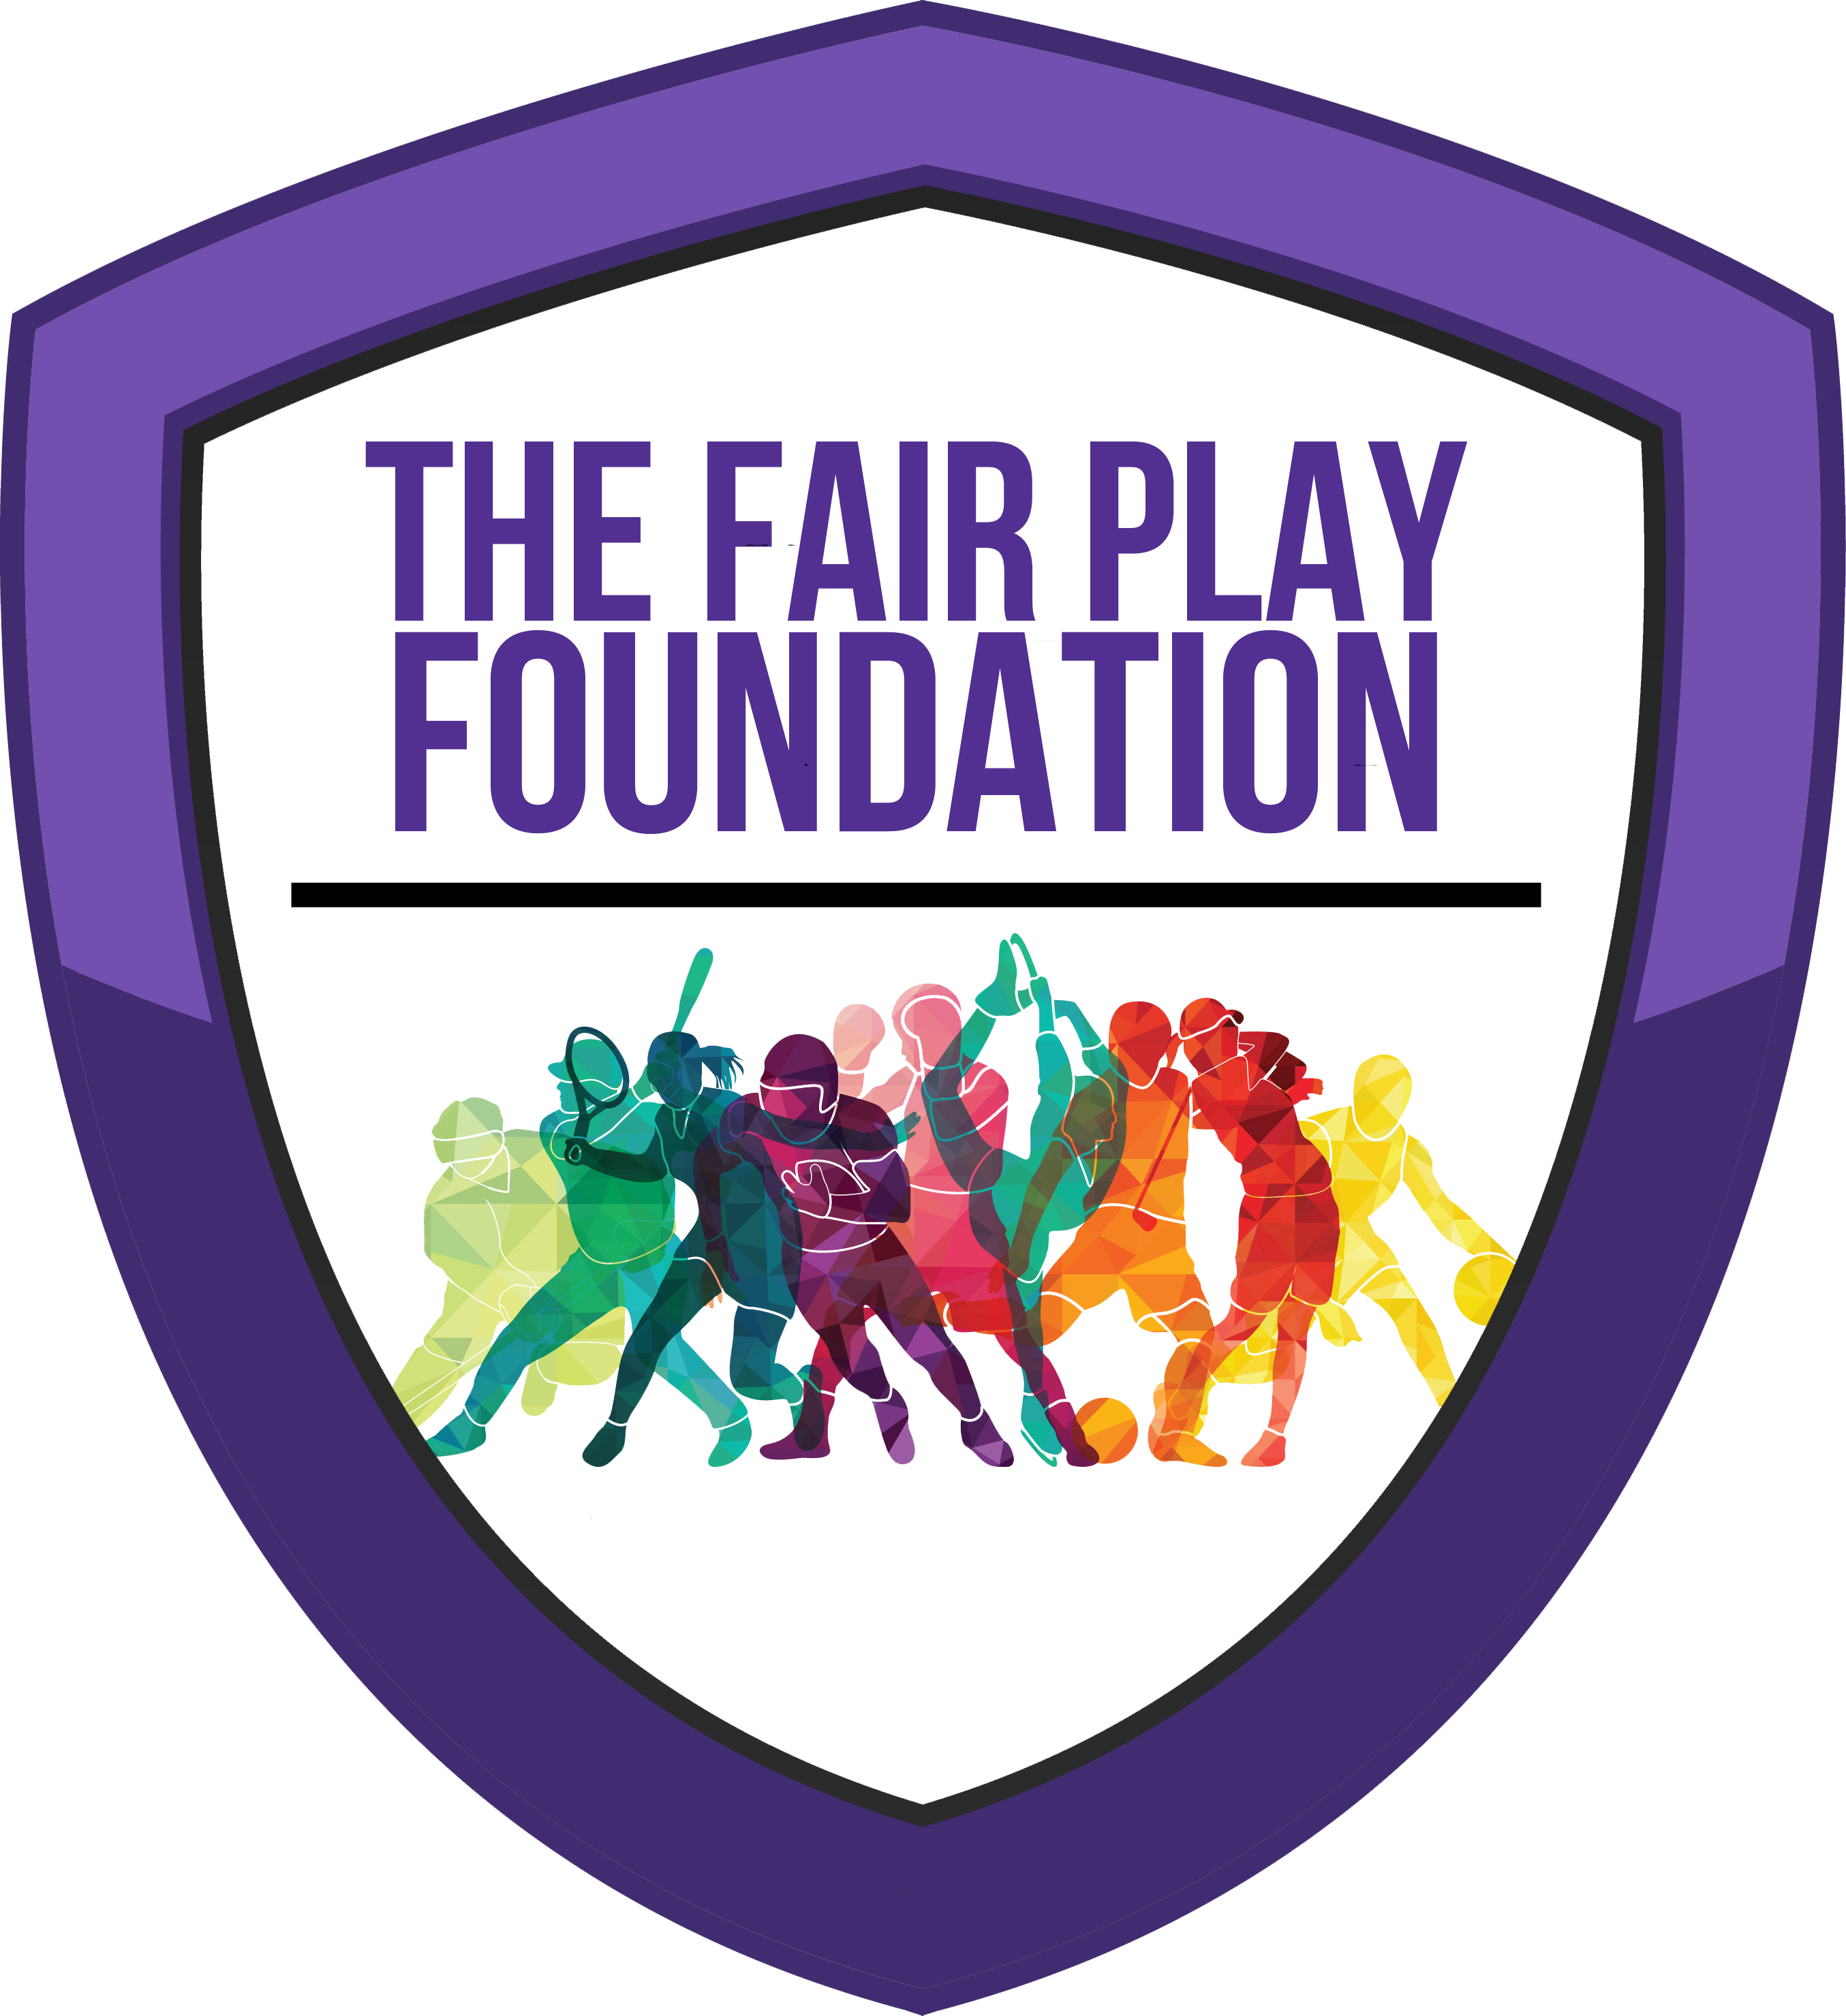 The Fair Play Foundation